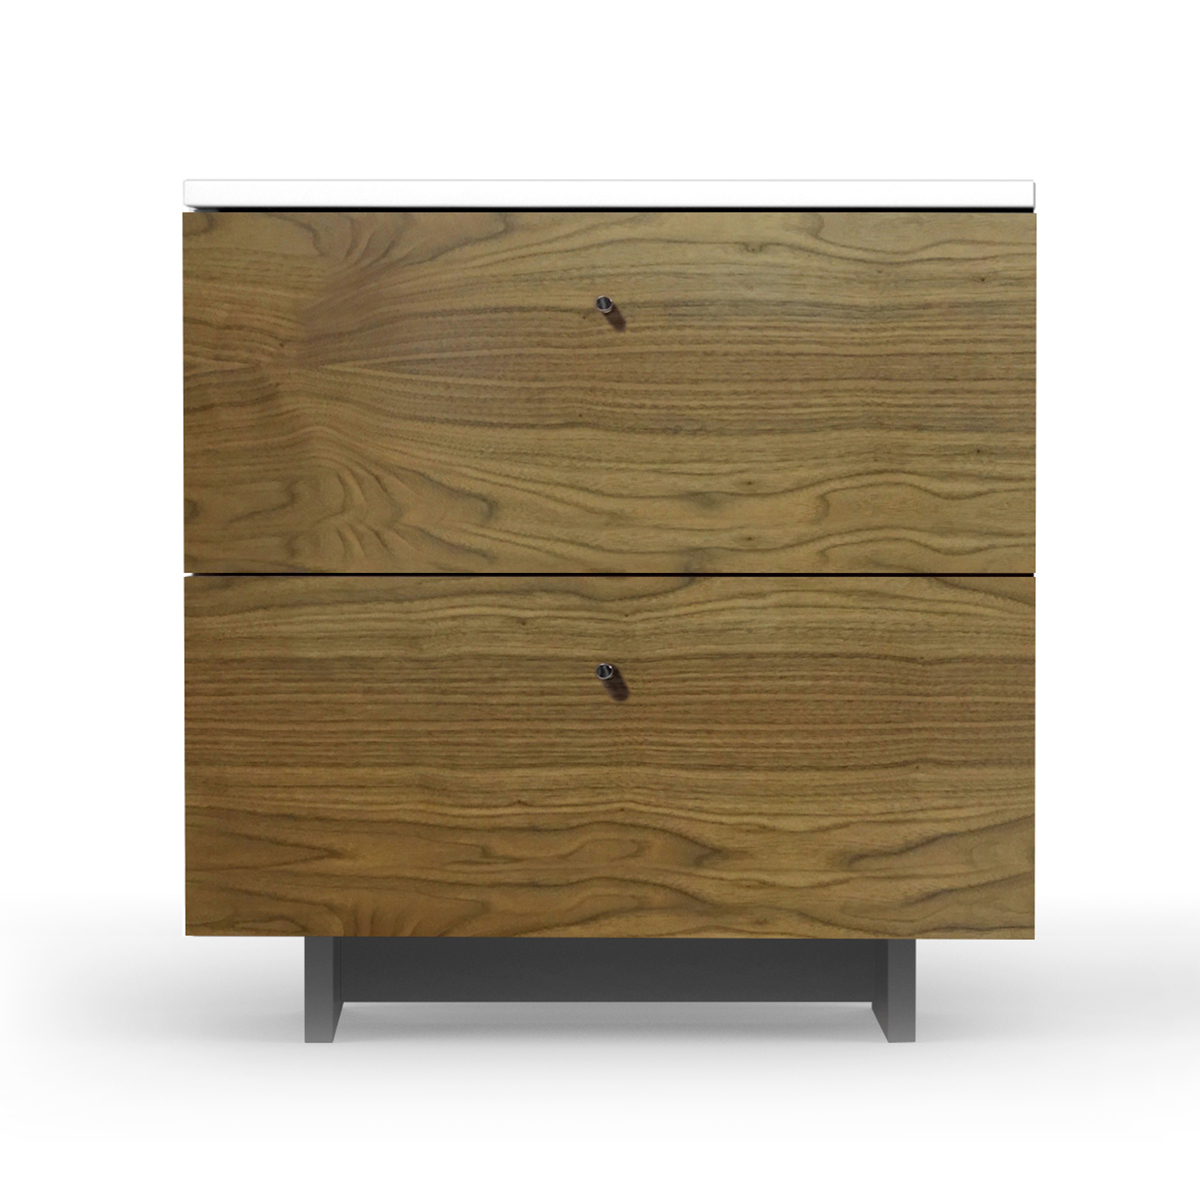 Spot on Square Roh Nightstand